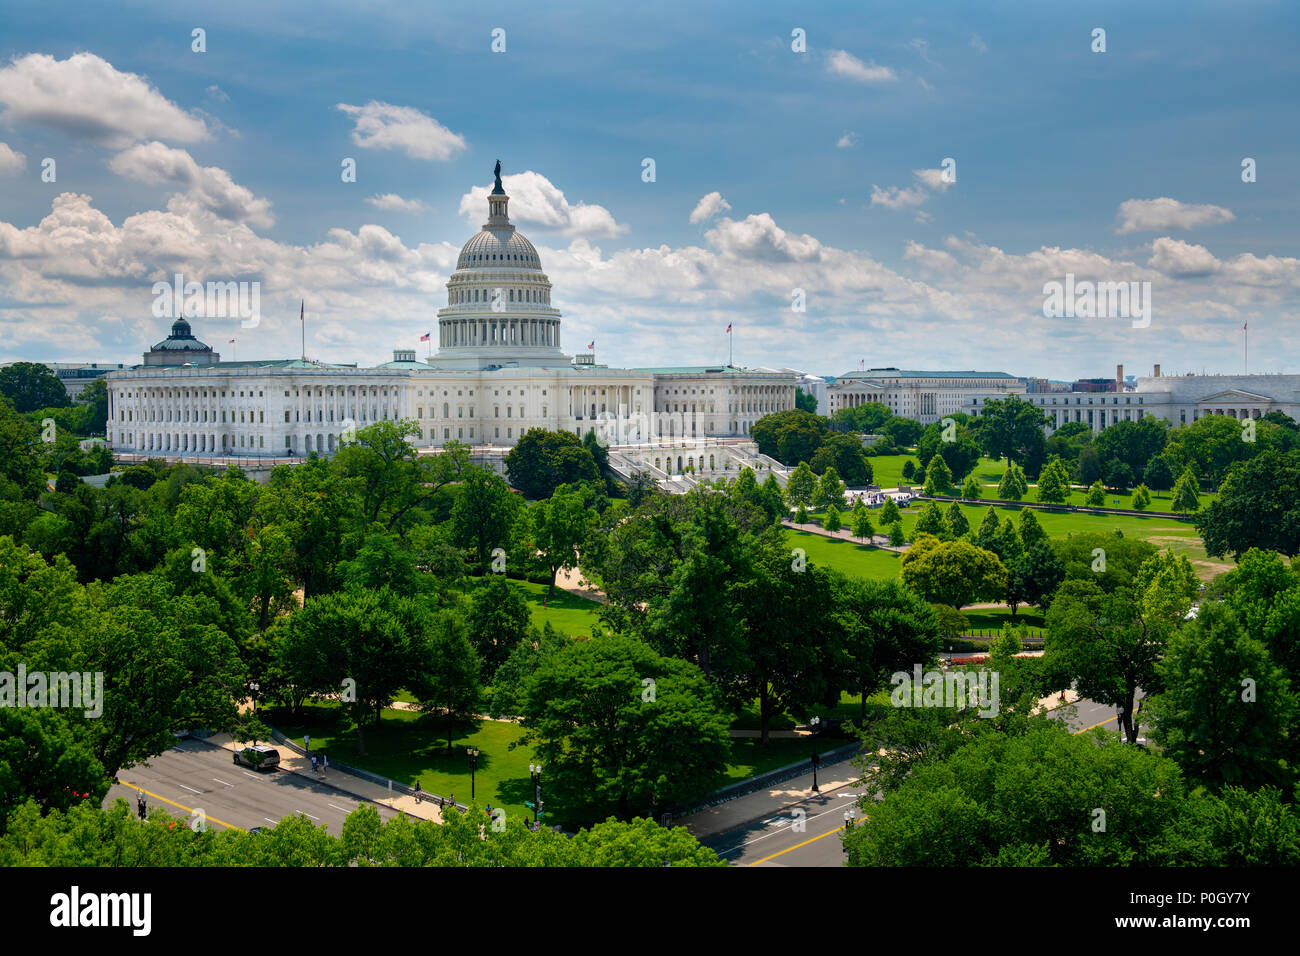 usa-wasington-dc-dc-the-u-s-capitol-buil